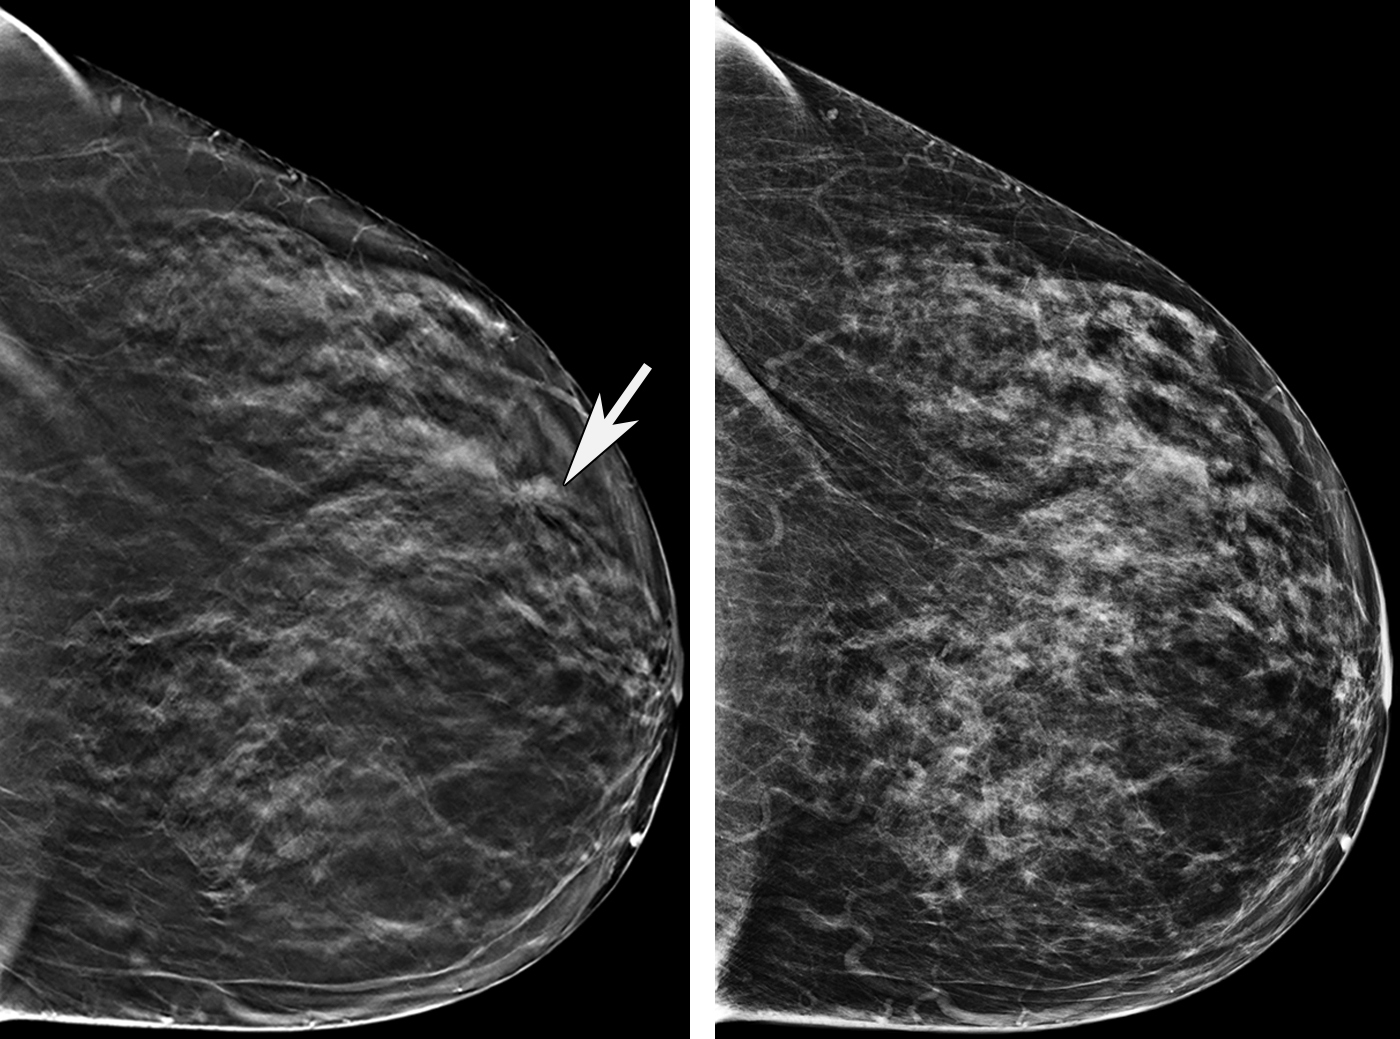 3d Mammography Creates More Precise Images To Detect Breast Cancer